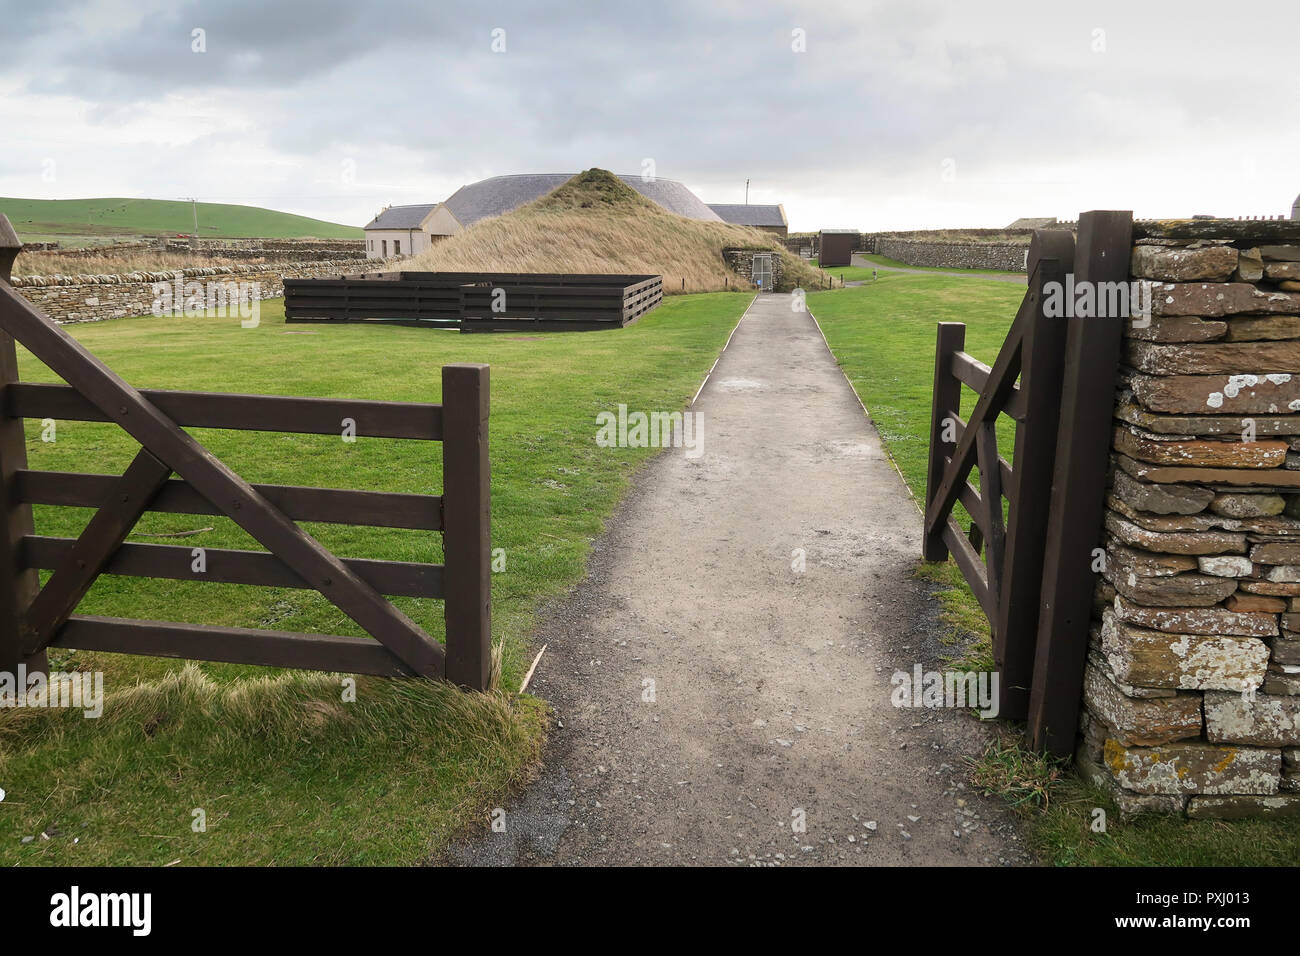 Entrance to Skara Brae visitor centre Orkney Islands - Stock Image